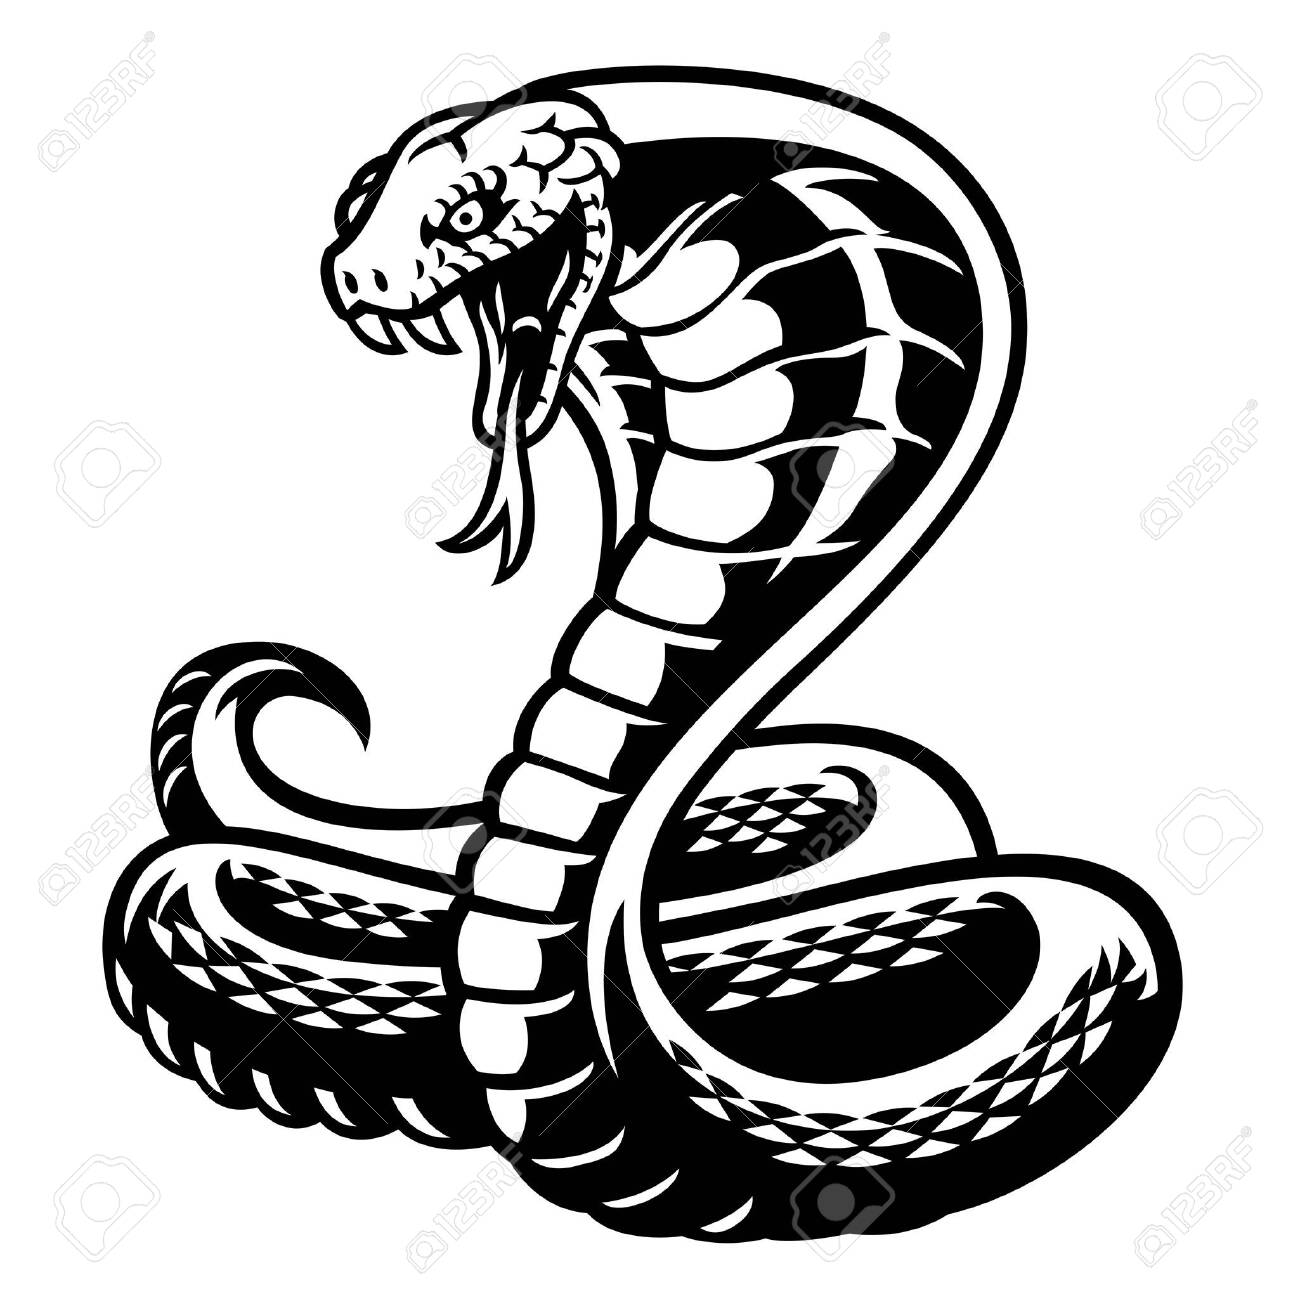 black and white of cobra snake royalty free cliparts vectors and stock illustration image 137056908 black and white of cobra snake royalty free cliparts vectors and stock illustration image 137056908